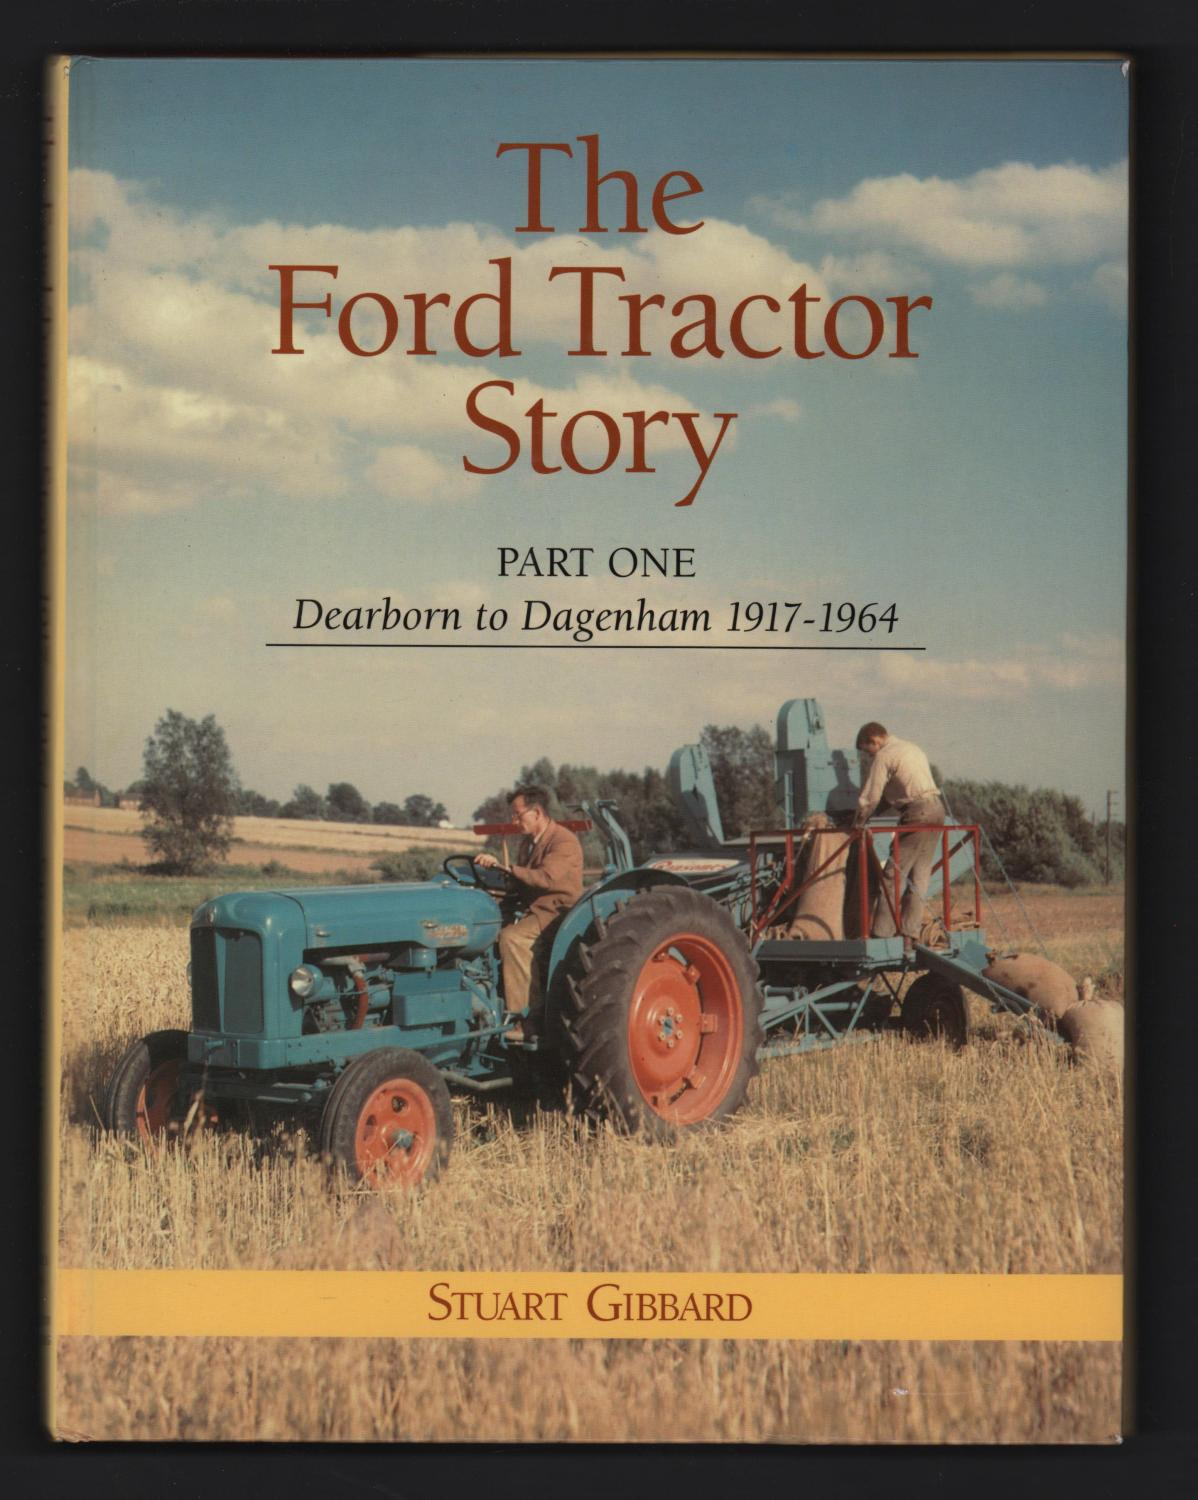 Farm Implement & Machinery Review September 1962 Tractor Farming Tractor Manuals & Publications